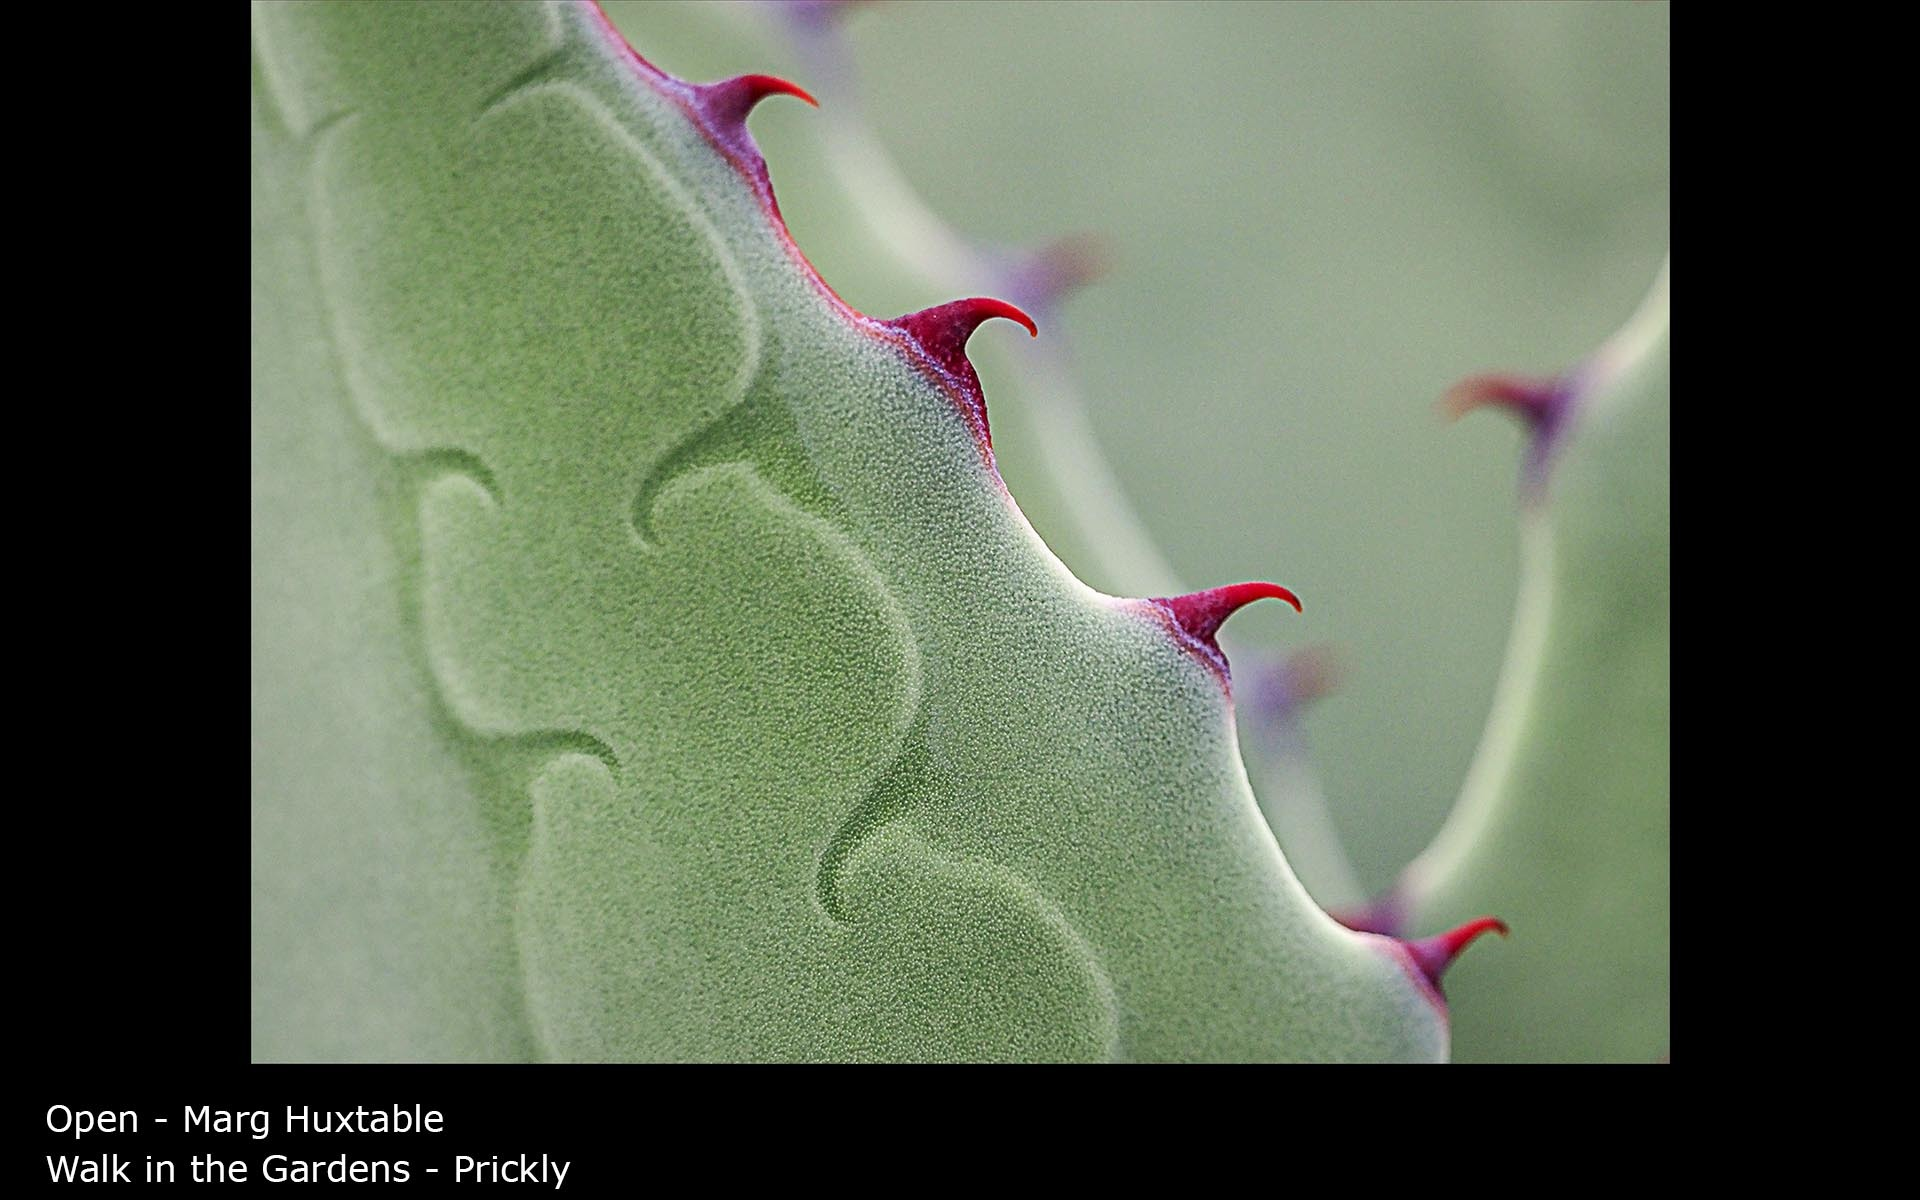 Walk in the Gardens - Prickly - Marg Huxtable